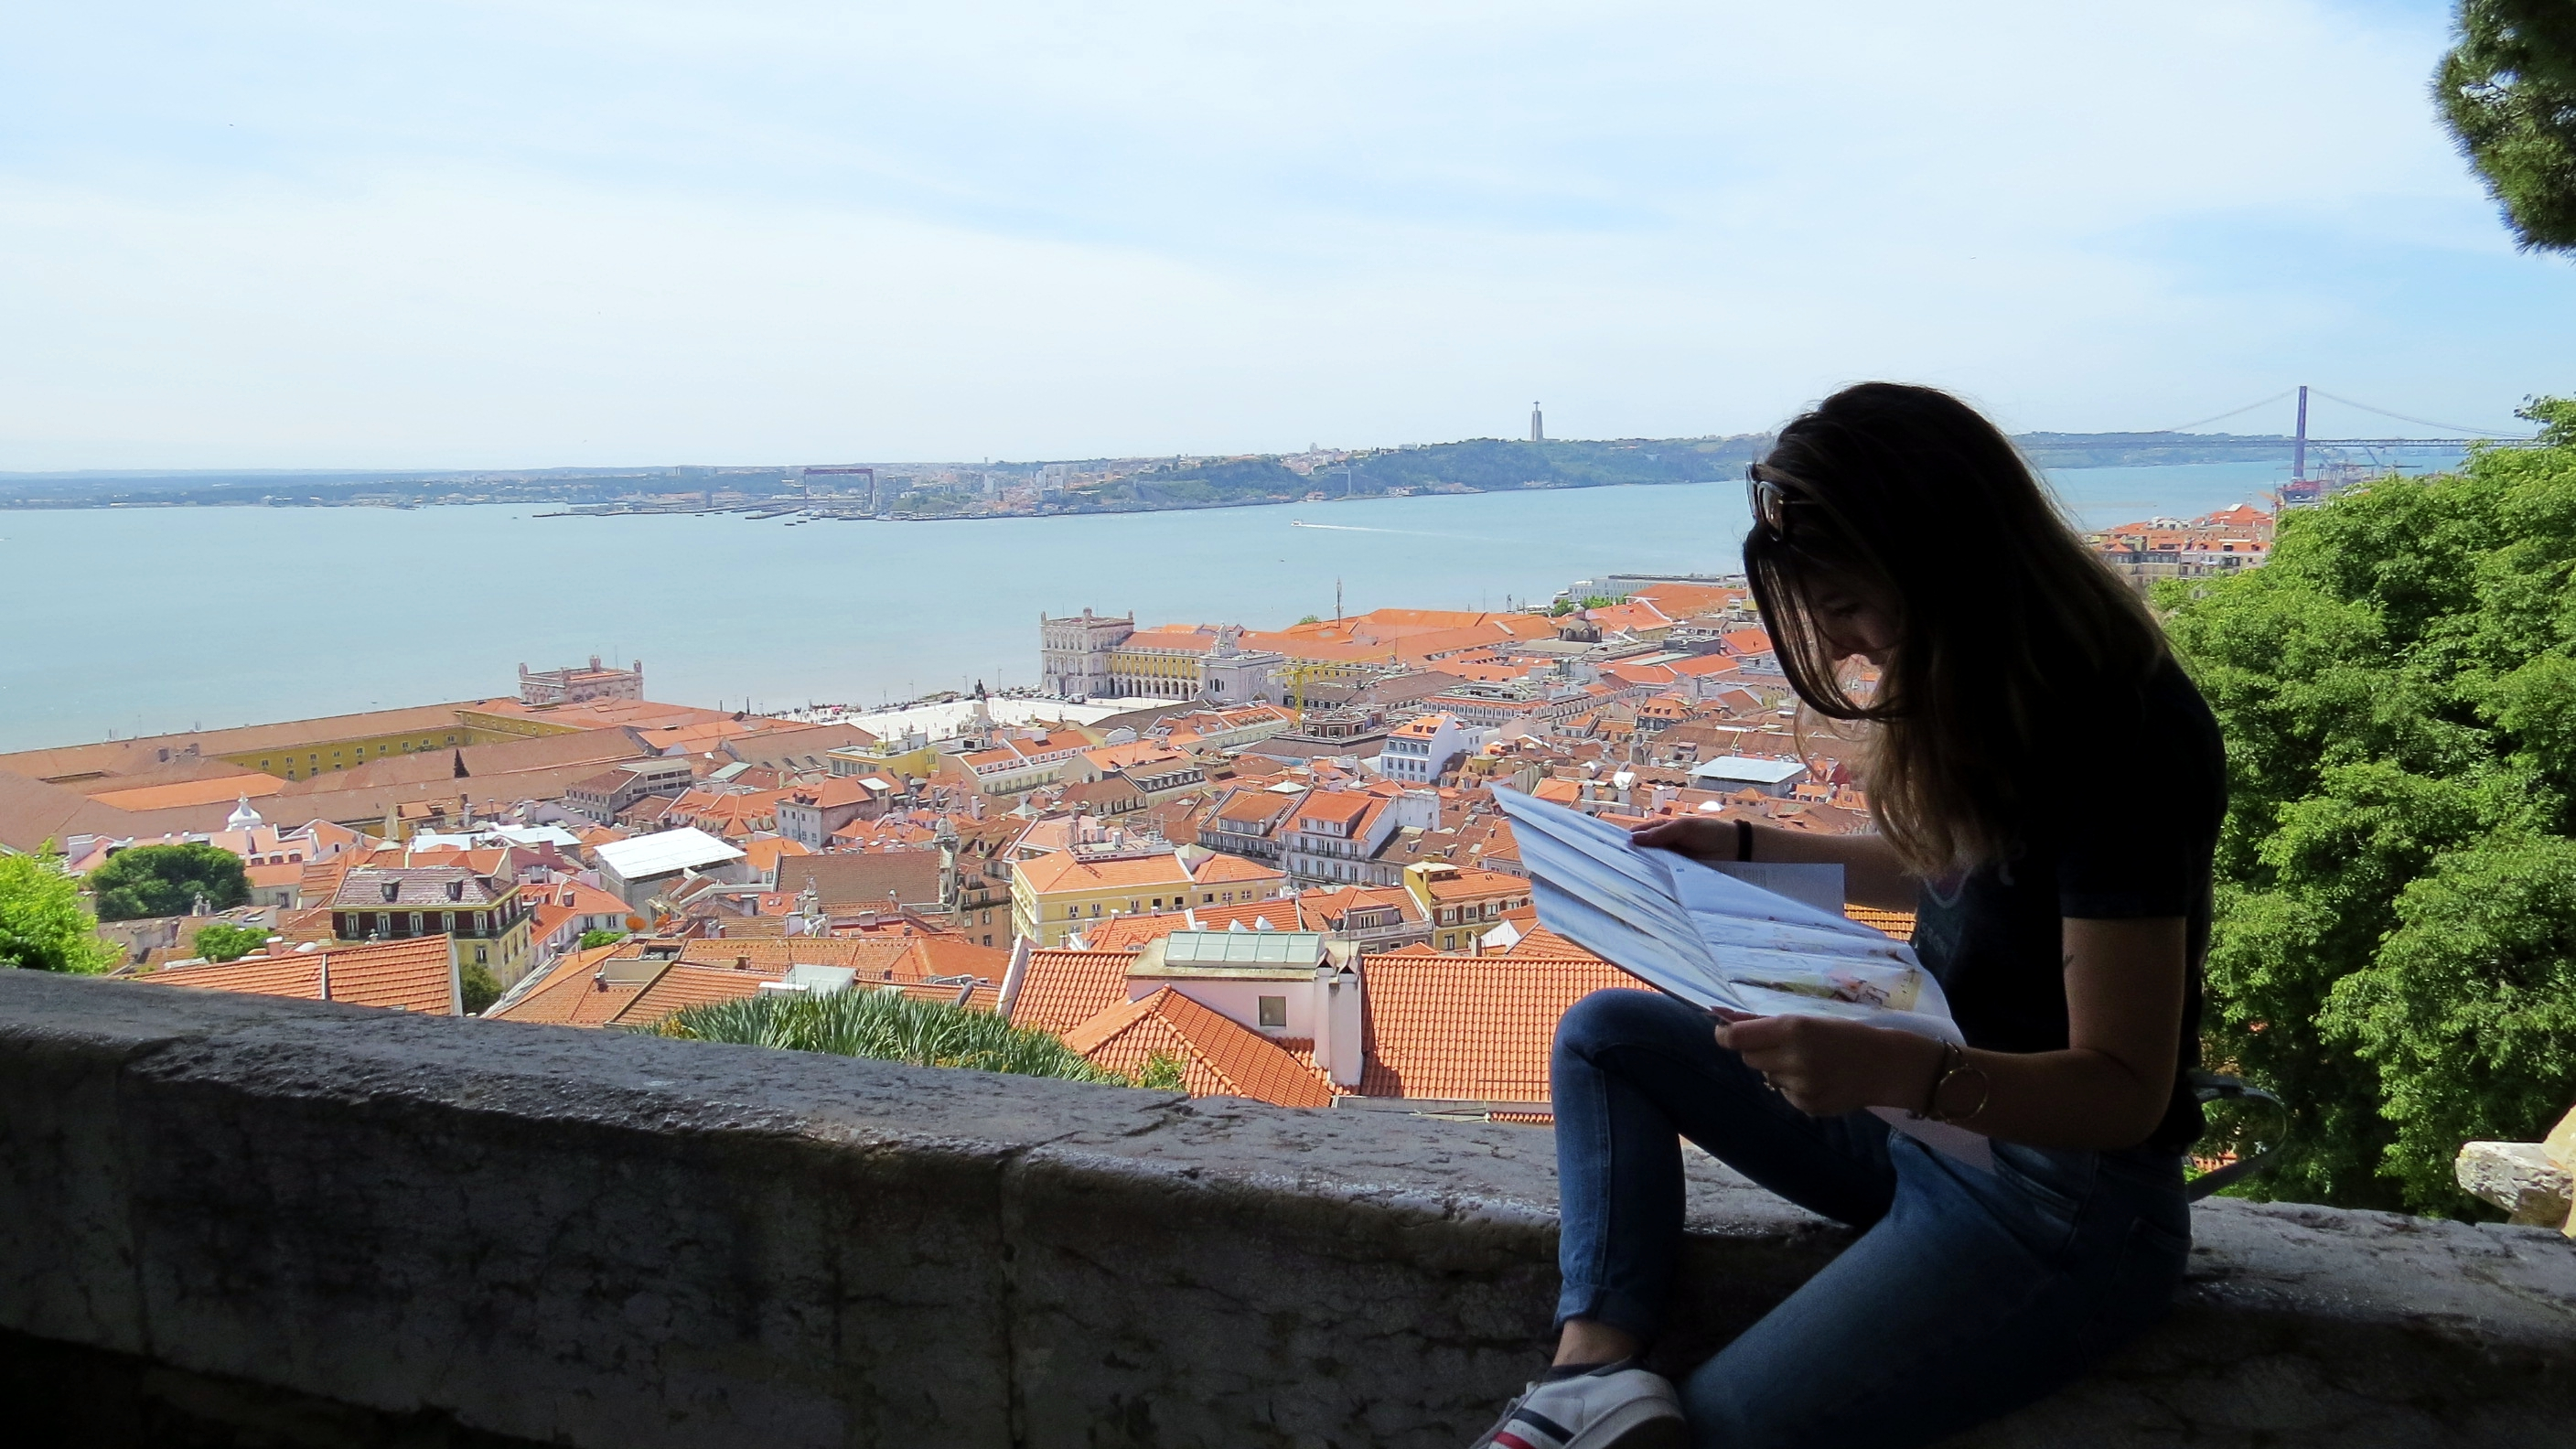 Sao Jorge Castle, Going to Belem & Beach Day – Lisbon day 5, 6 & 7